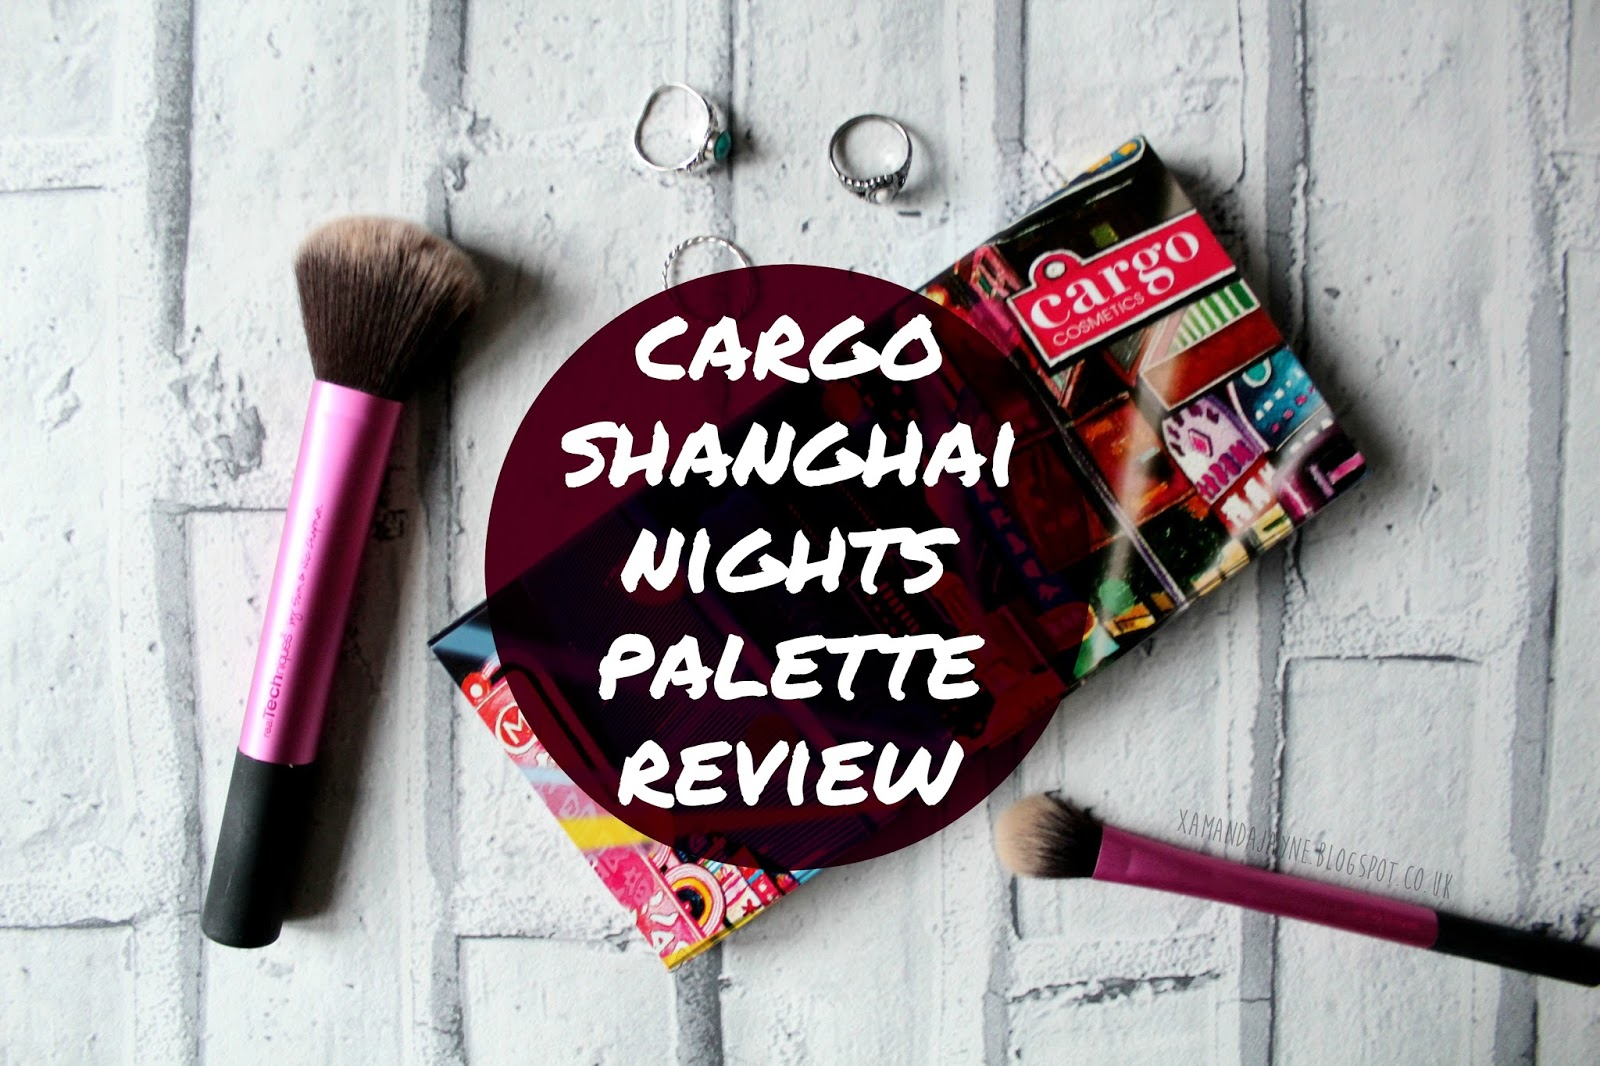 cargo cosmetics, shanghai nights palette, high-end beauty, eyeshadow palette, review, swatches